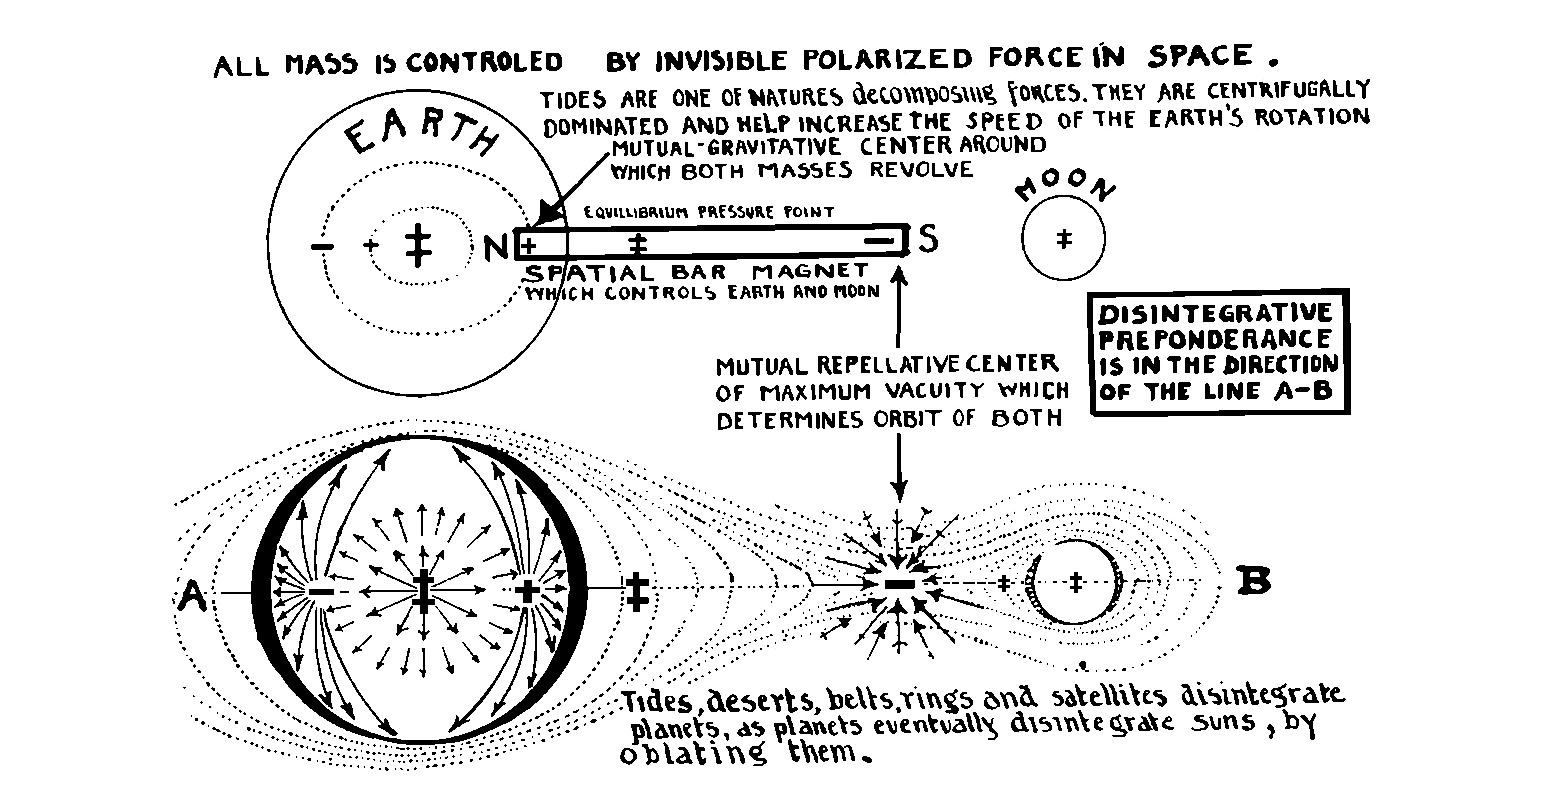 All Mass is Controlled by Invisible Polarized Force in Space